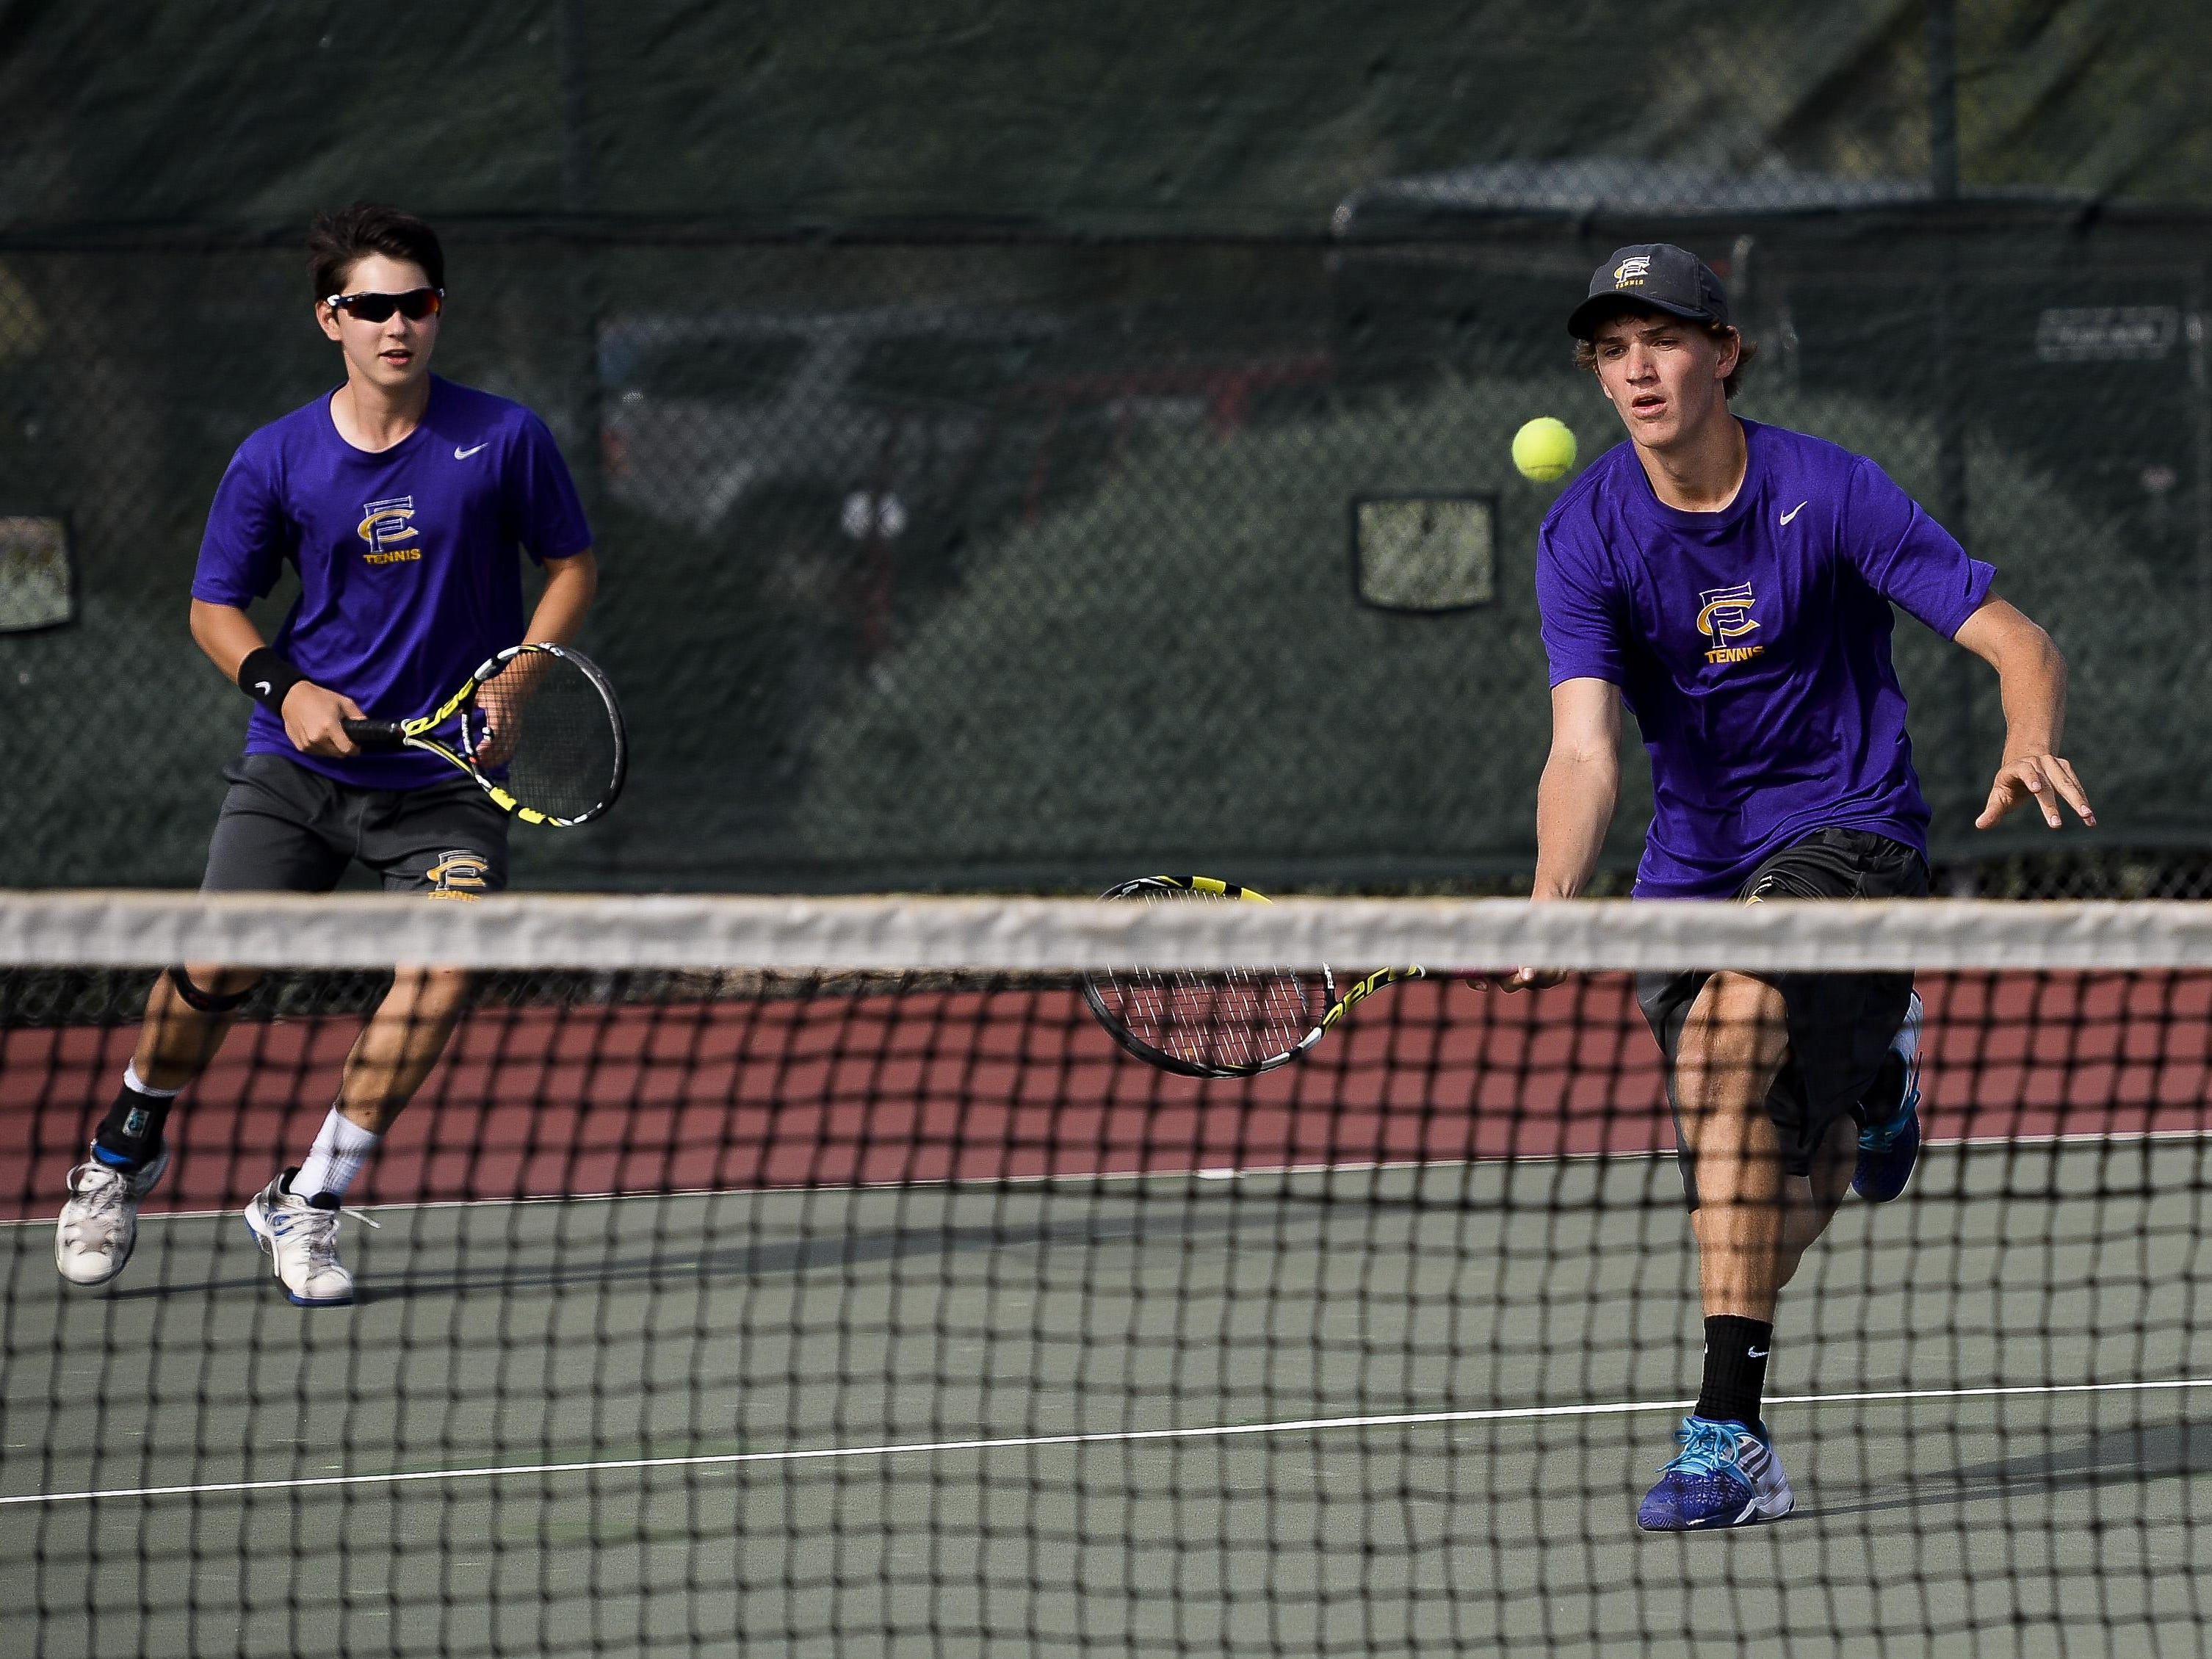 Fort Collins High School's No. 1 doubles tennis team of Trae Beneck, left, and Mitch Carlson play earlier this season. The duo qualified for the state tournament on Wednesday.